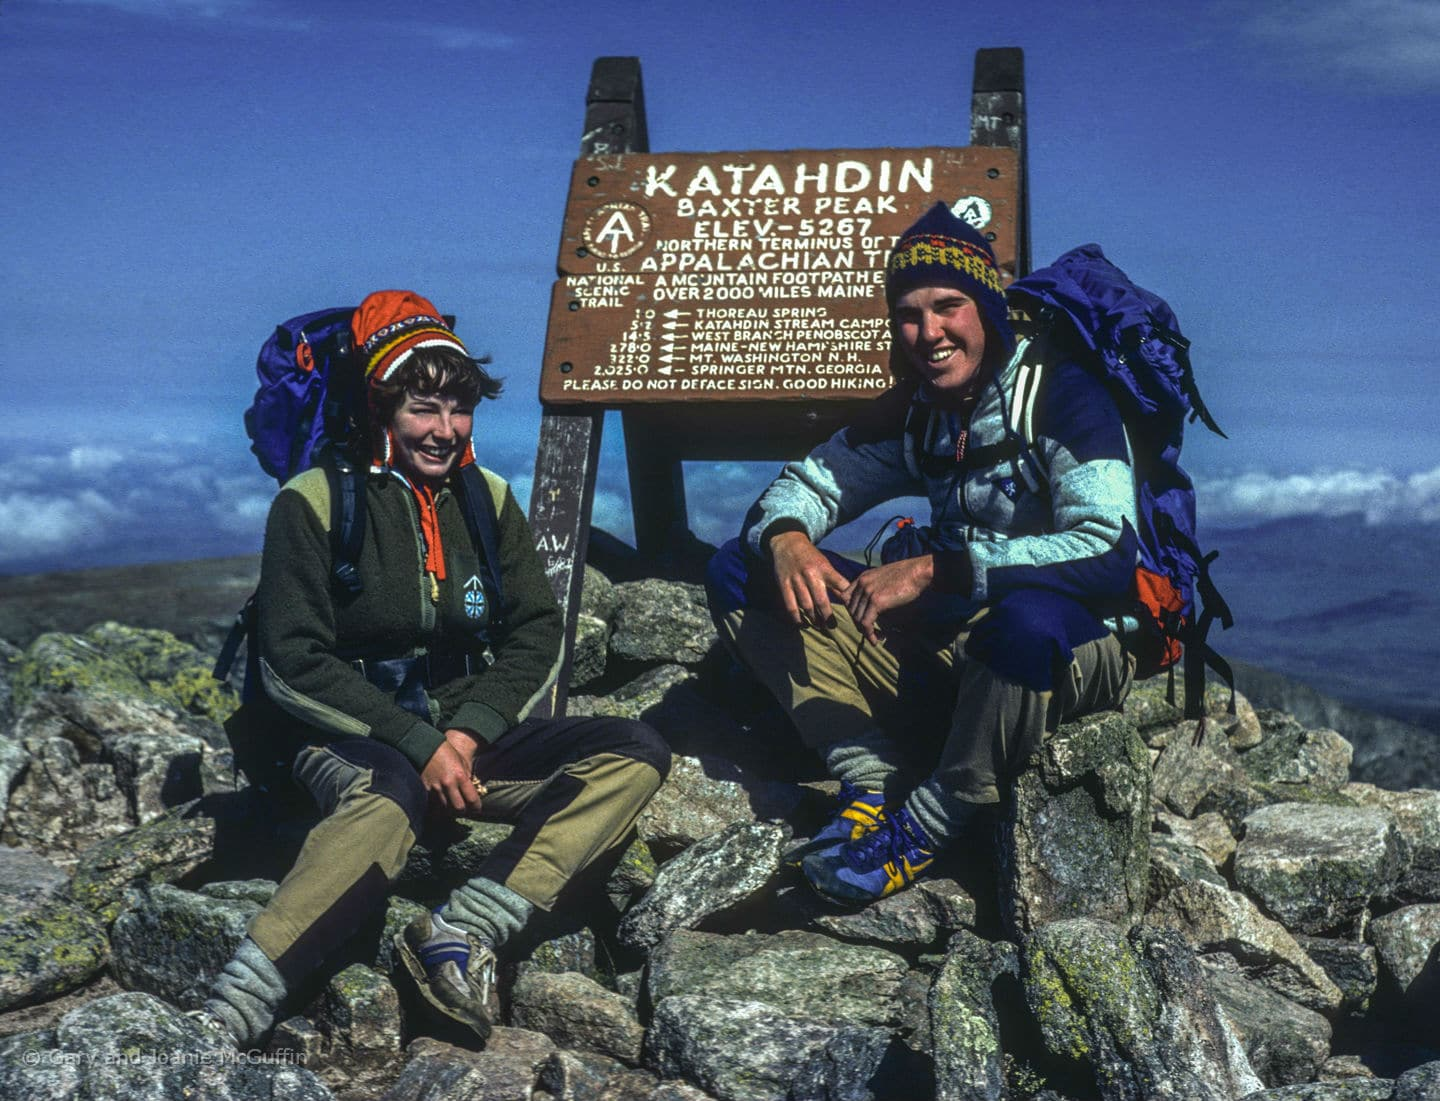 Two people sitting infront of Katahdin Baxter Peak sign on the Appalachian Trail